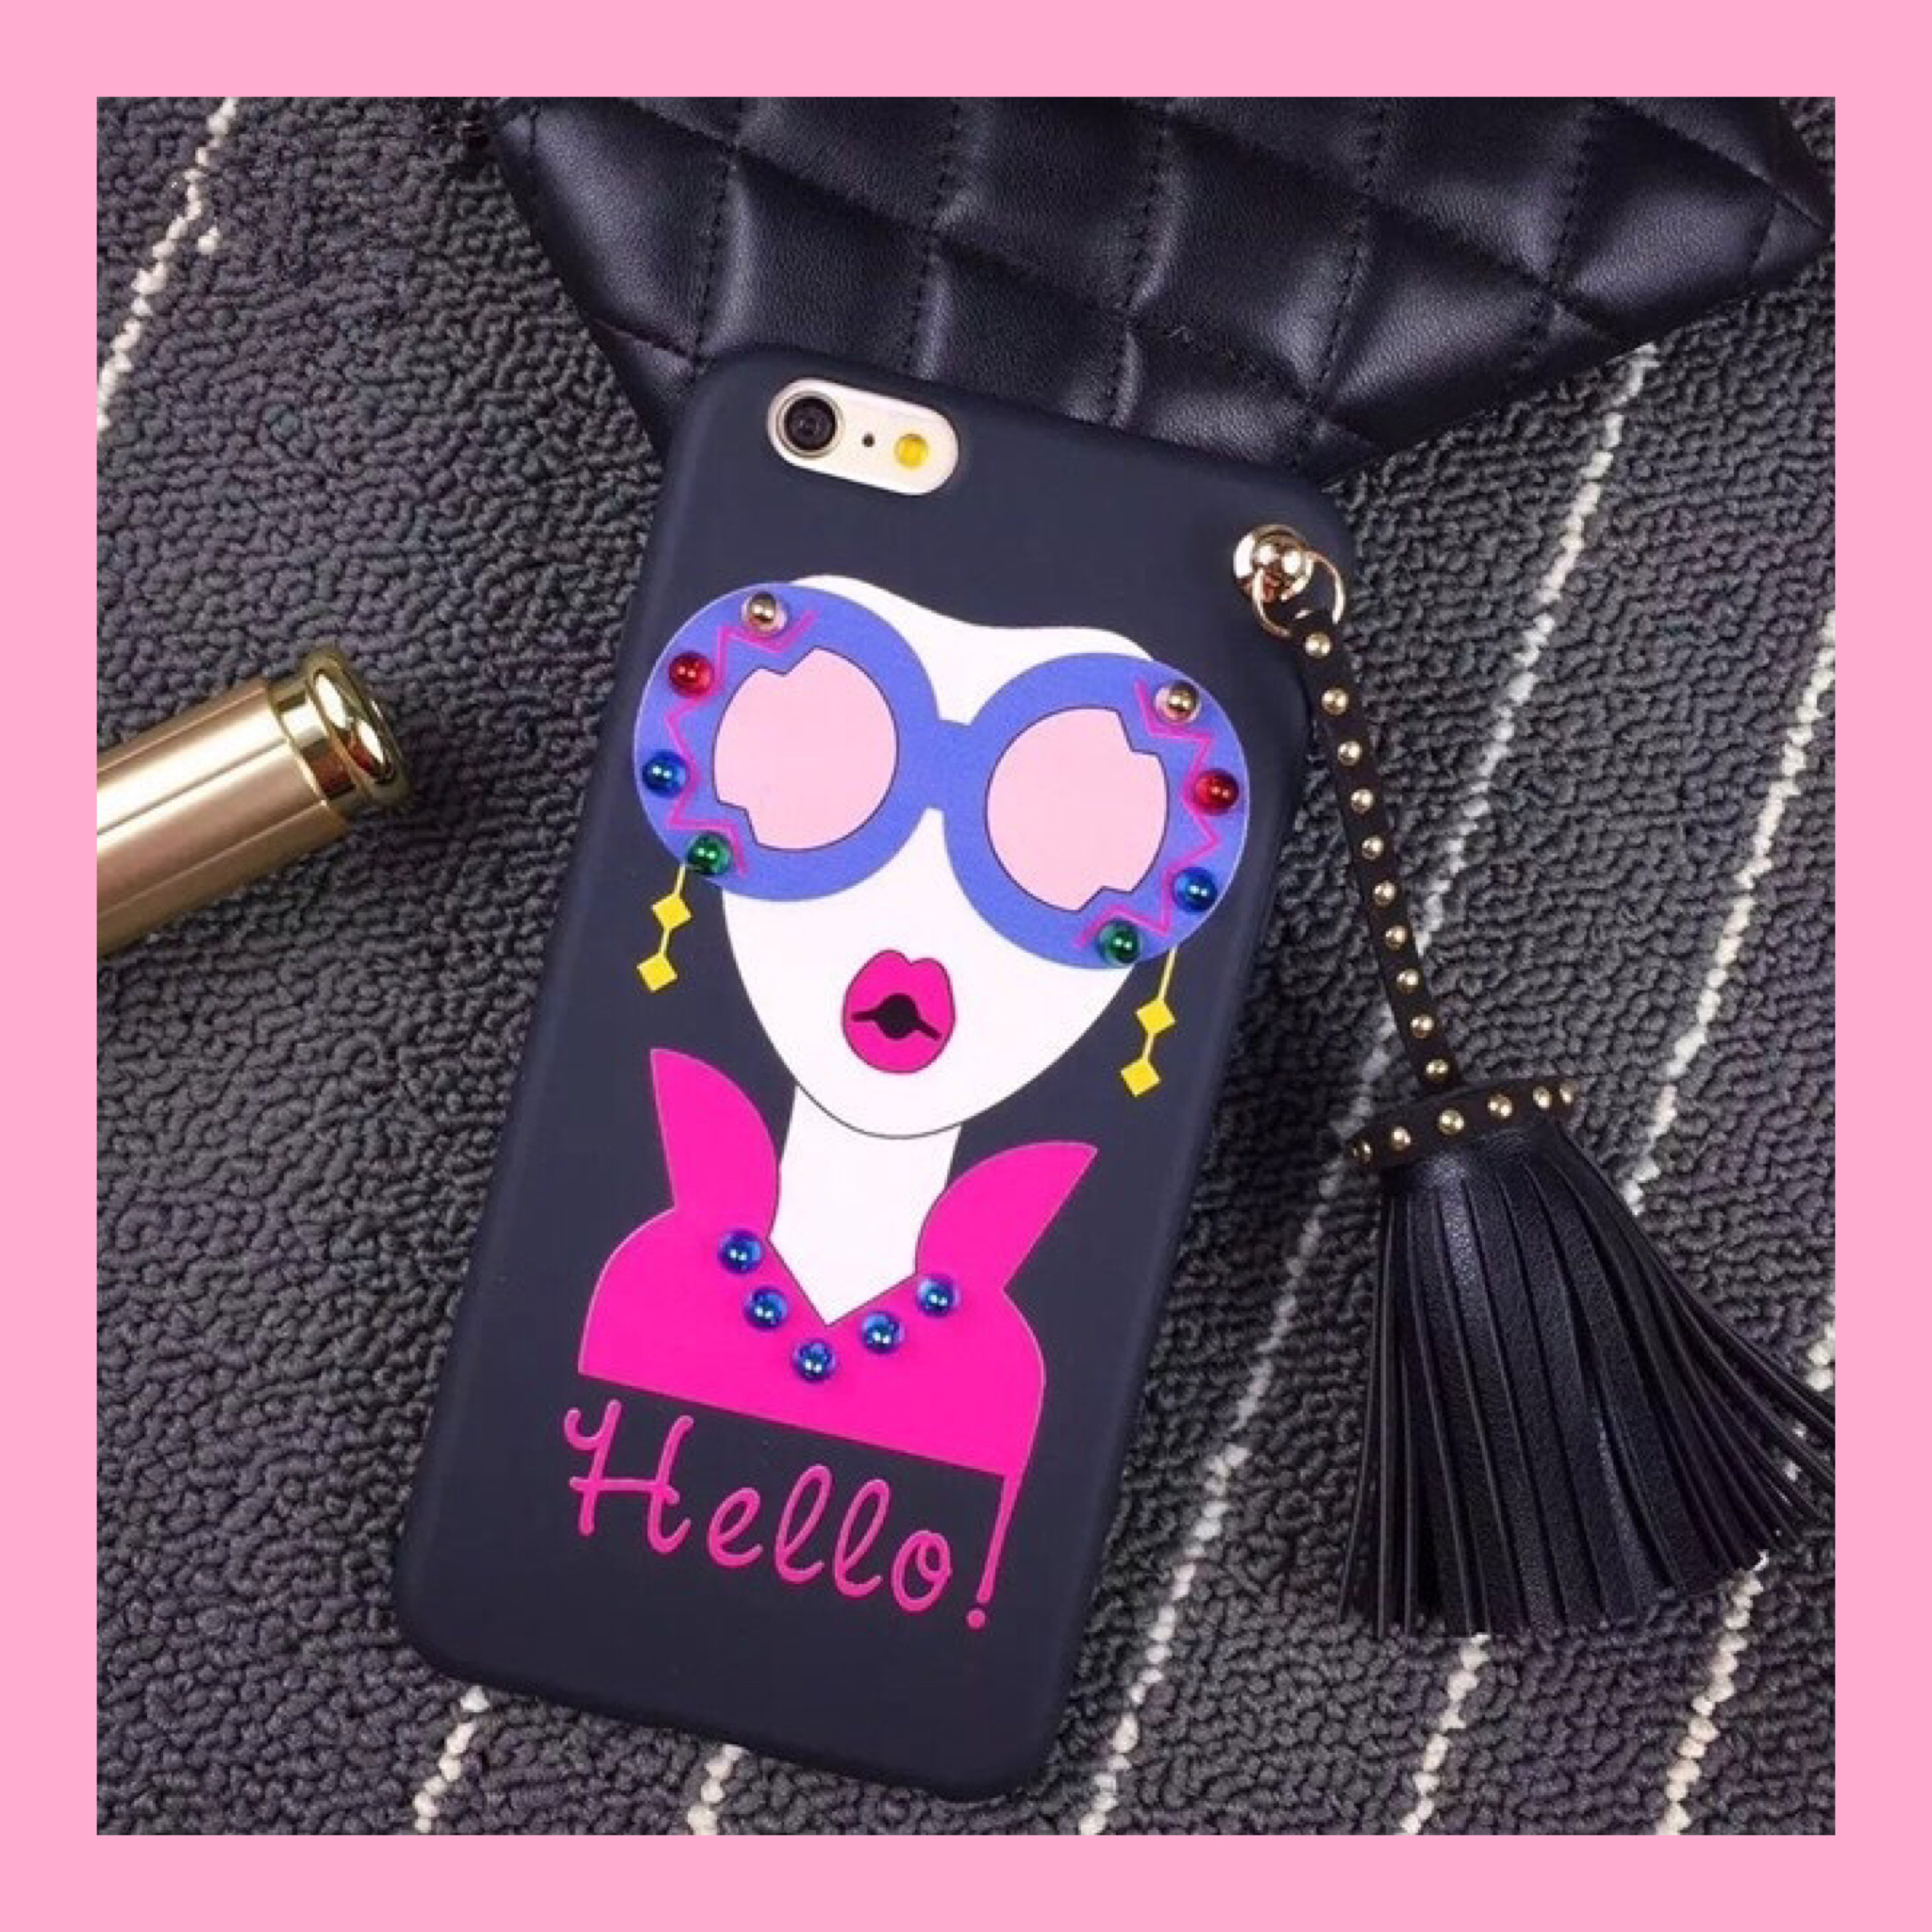 送料無料!tassel girl iPhone case『Hello』